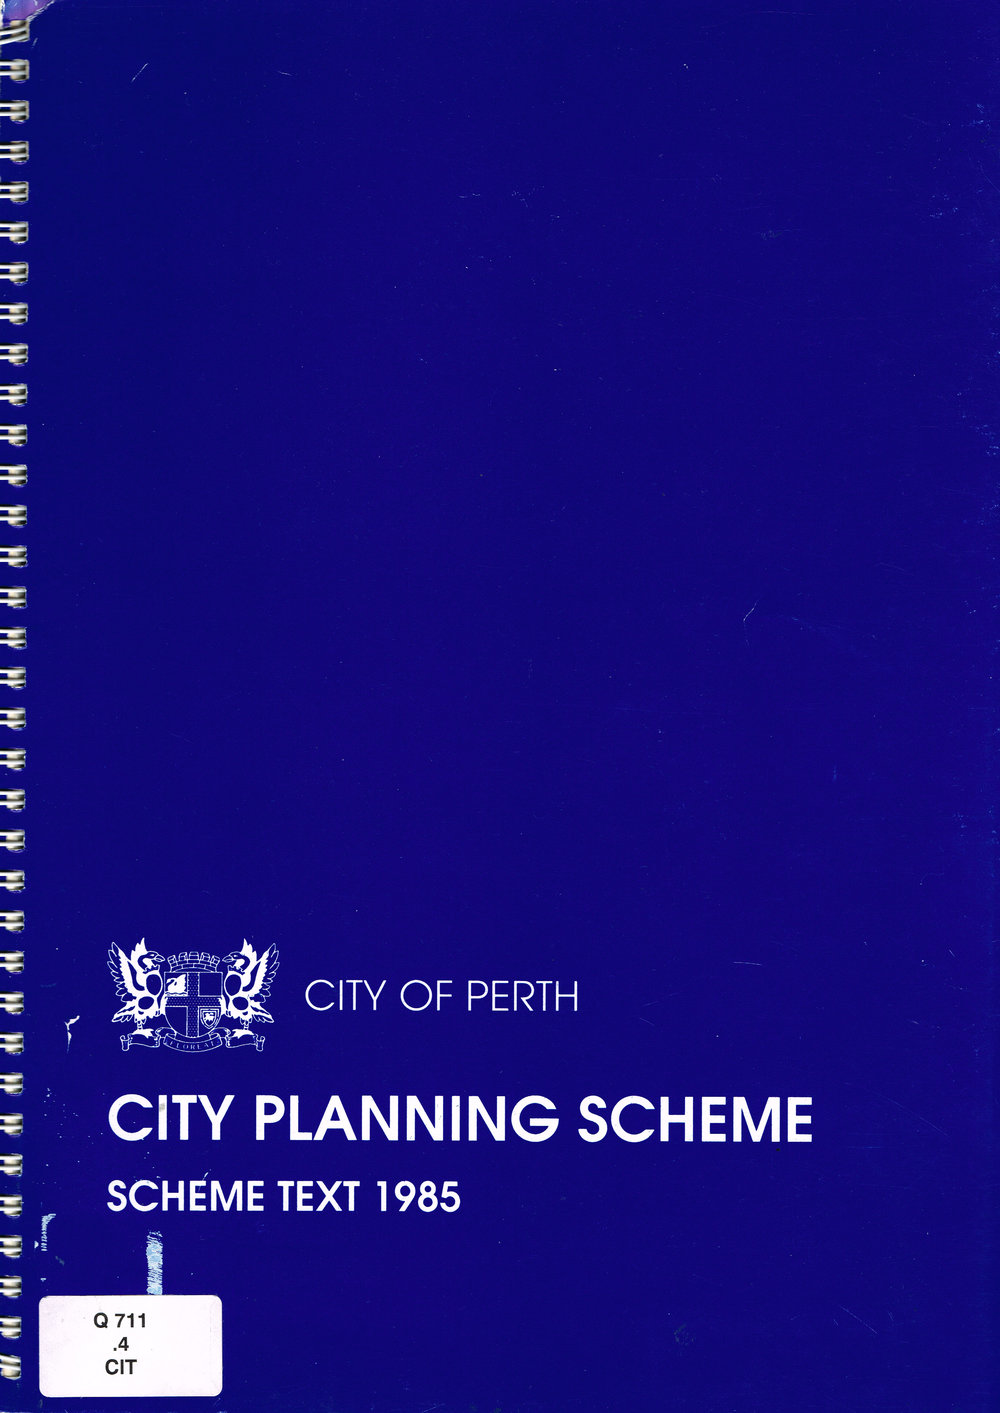 City Planning Scheme : Scheme Text 1985, December 1990 Second Edition  City of Perth : The Planning Department Perth City Council